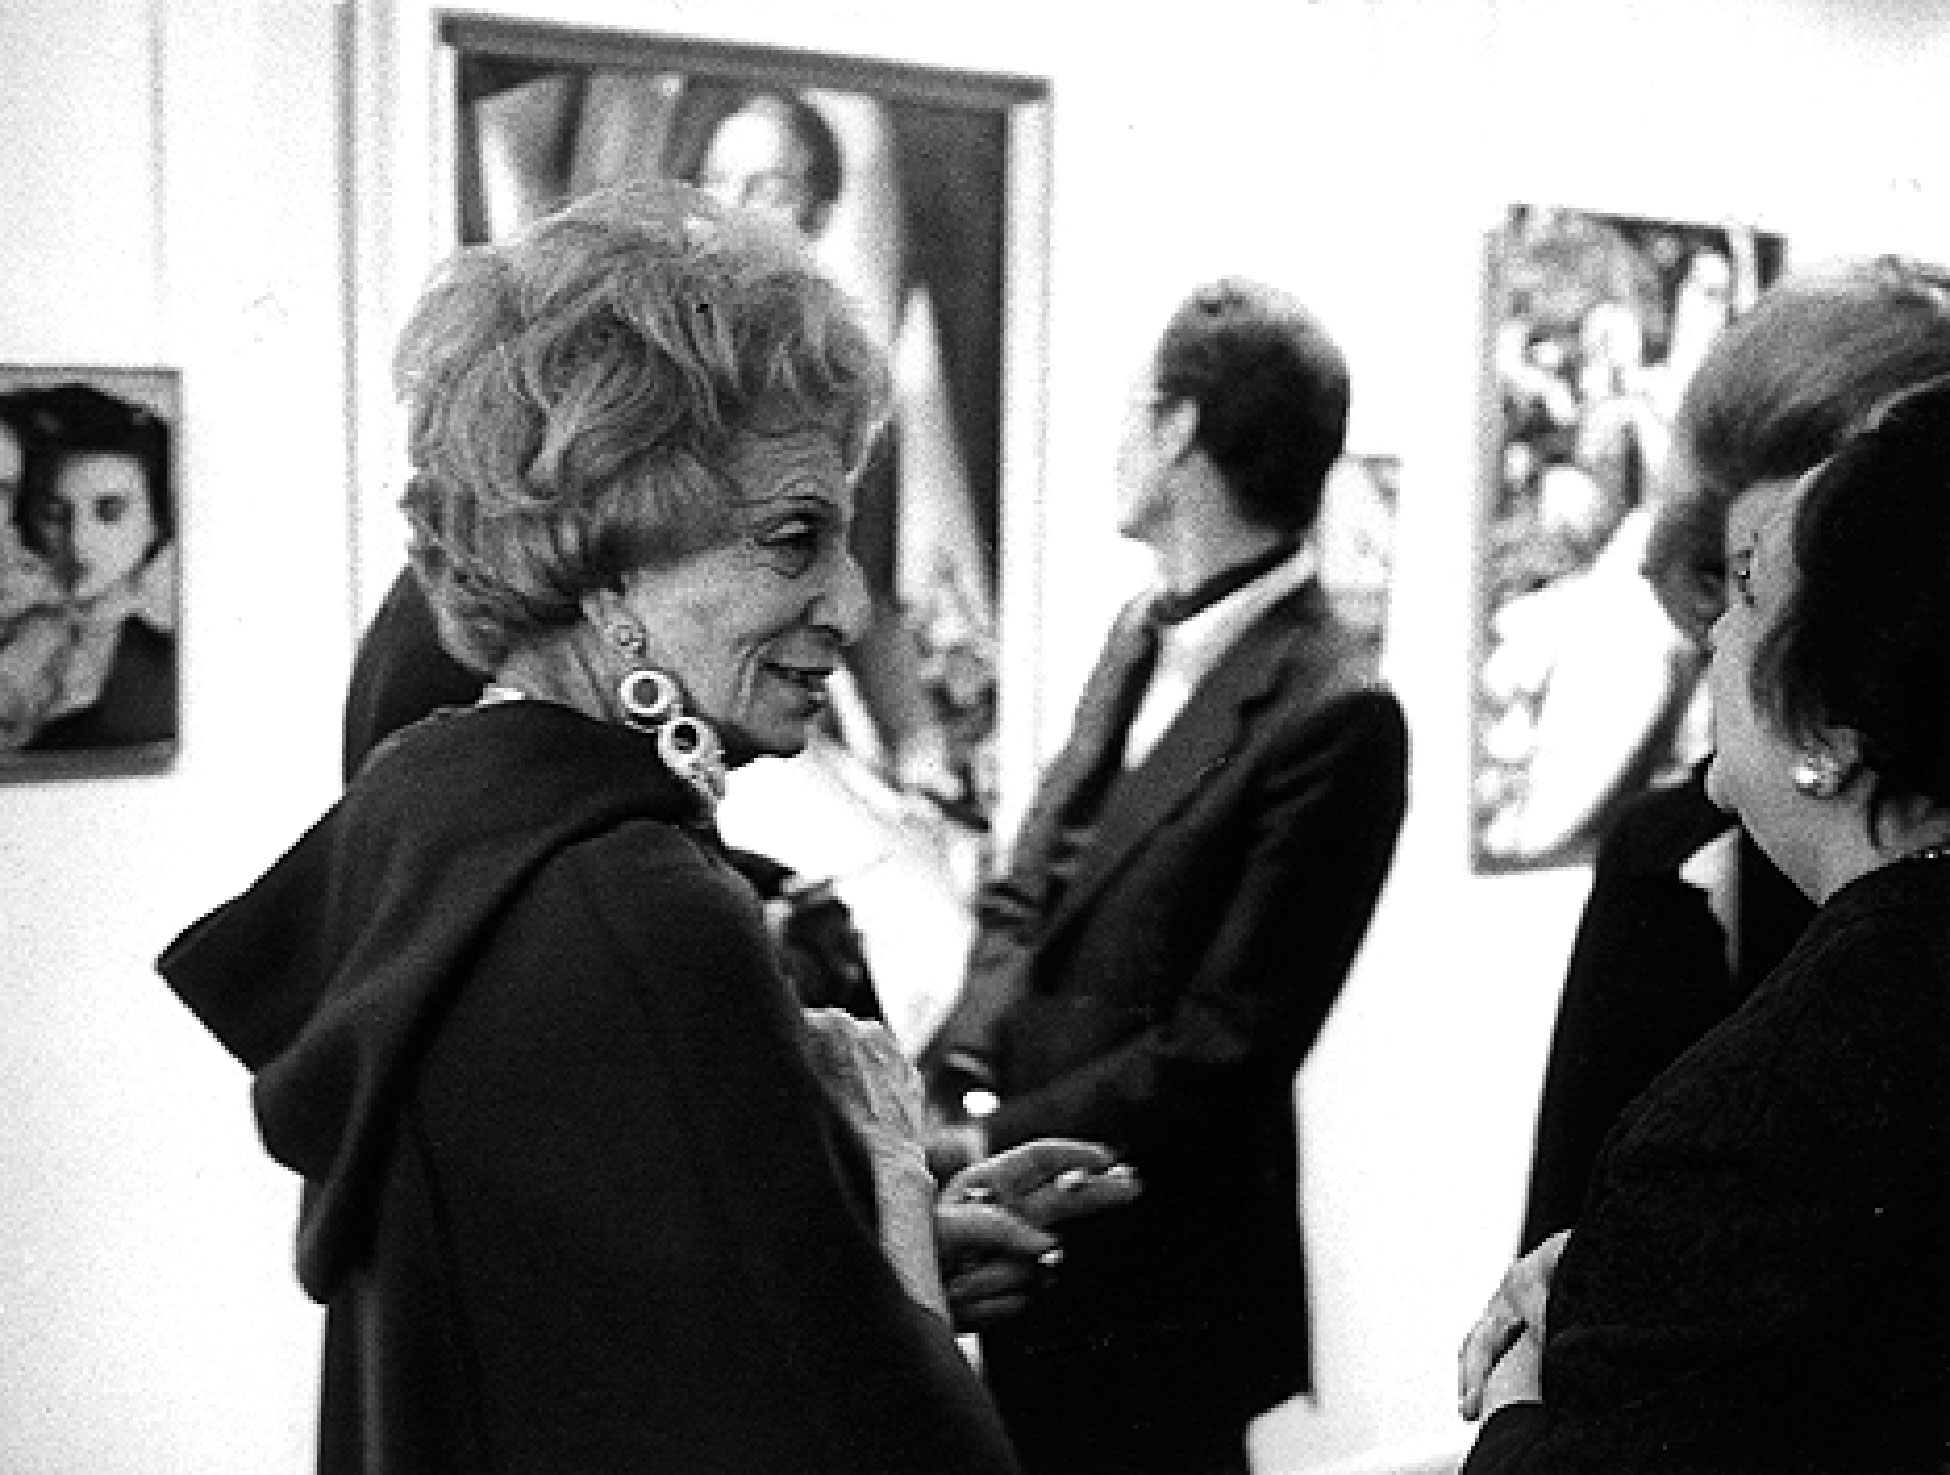 1972 – A retrospective of Tamara`s work is held at the Galerie du Luxembourg in Paris, organized by Alain Blondel